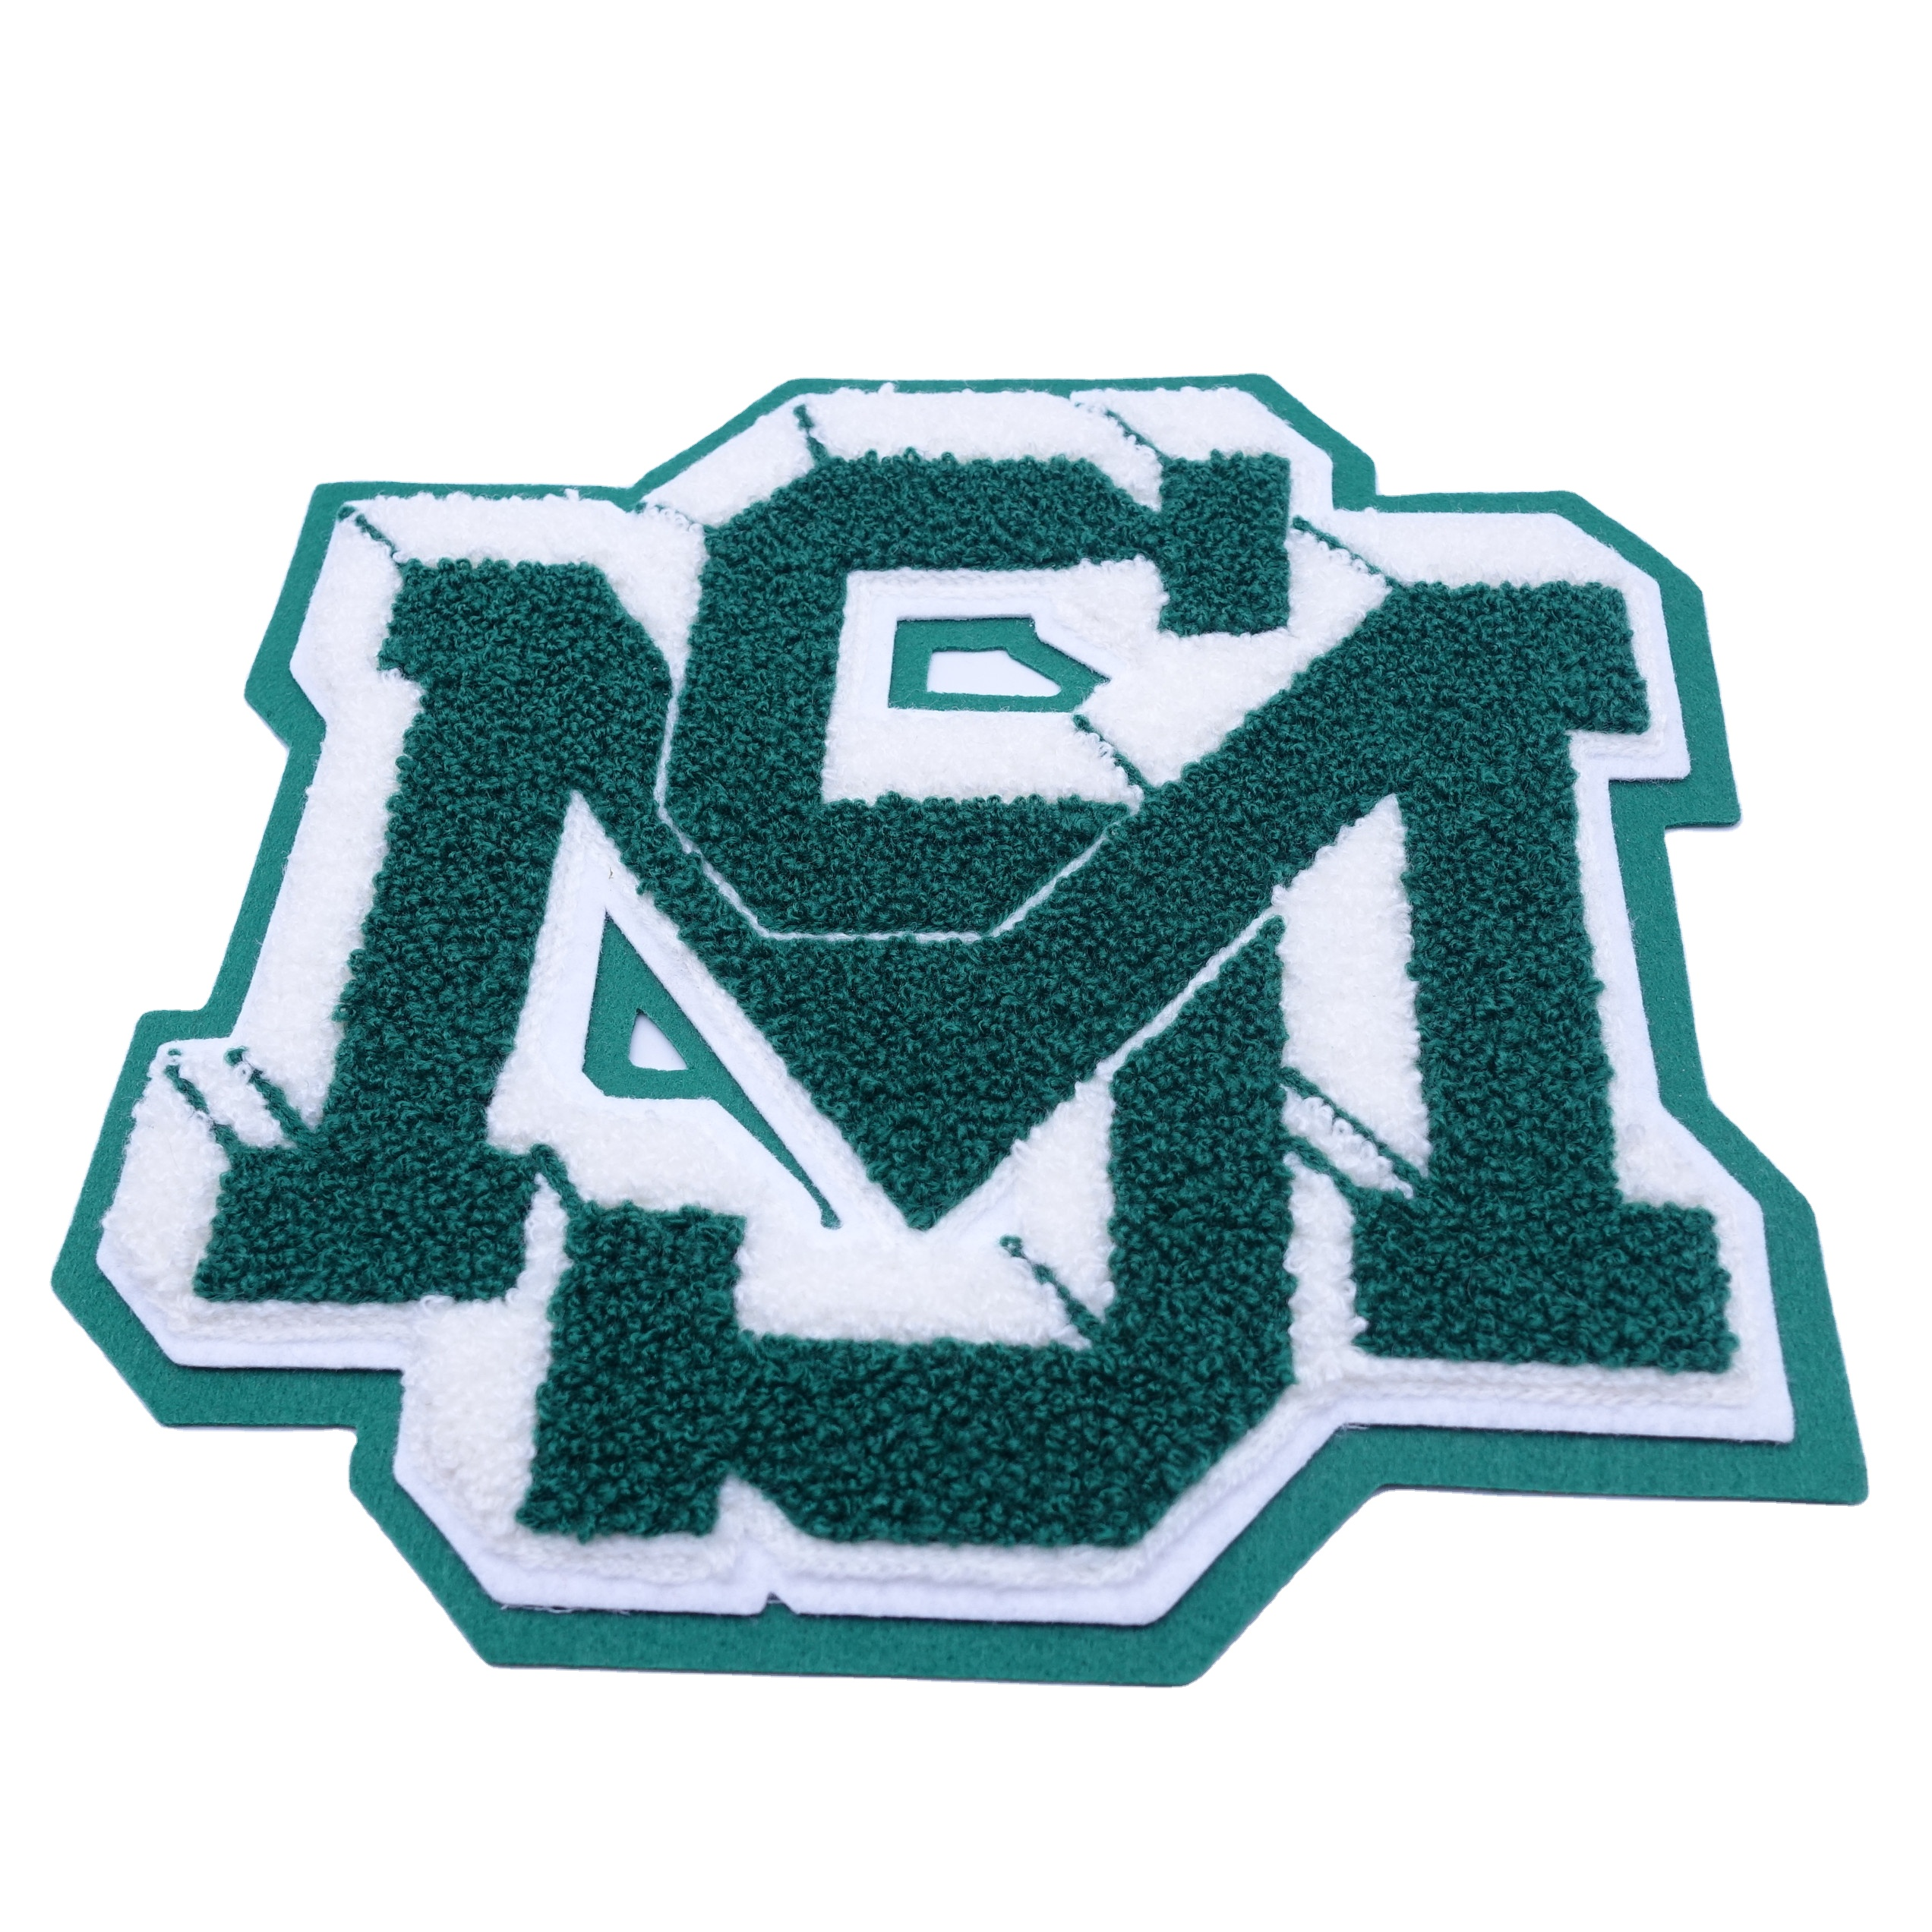 Sew on Large Iron on Customized Chenille Embroidered Sports Letter Patches for Garment/Bag/Jeans/Shoes